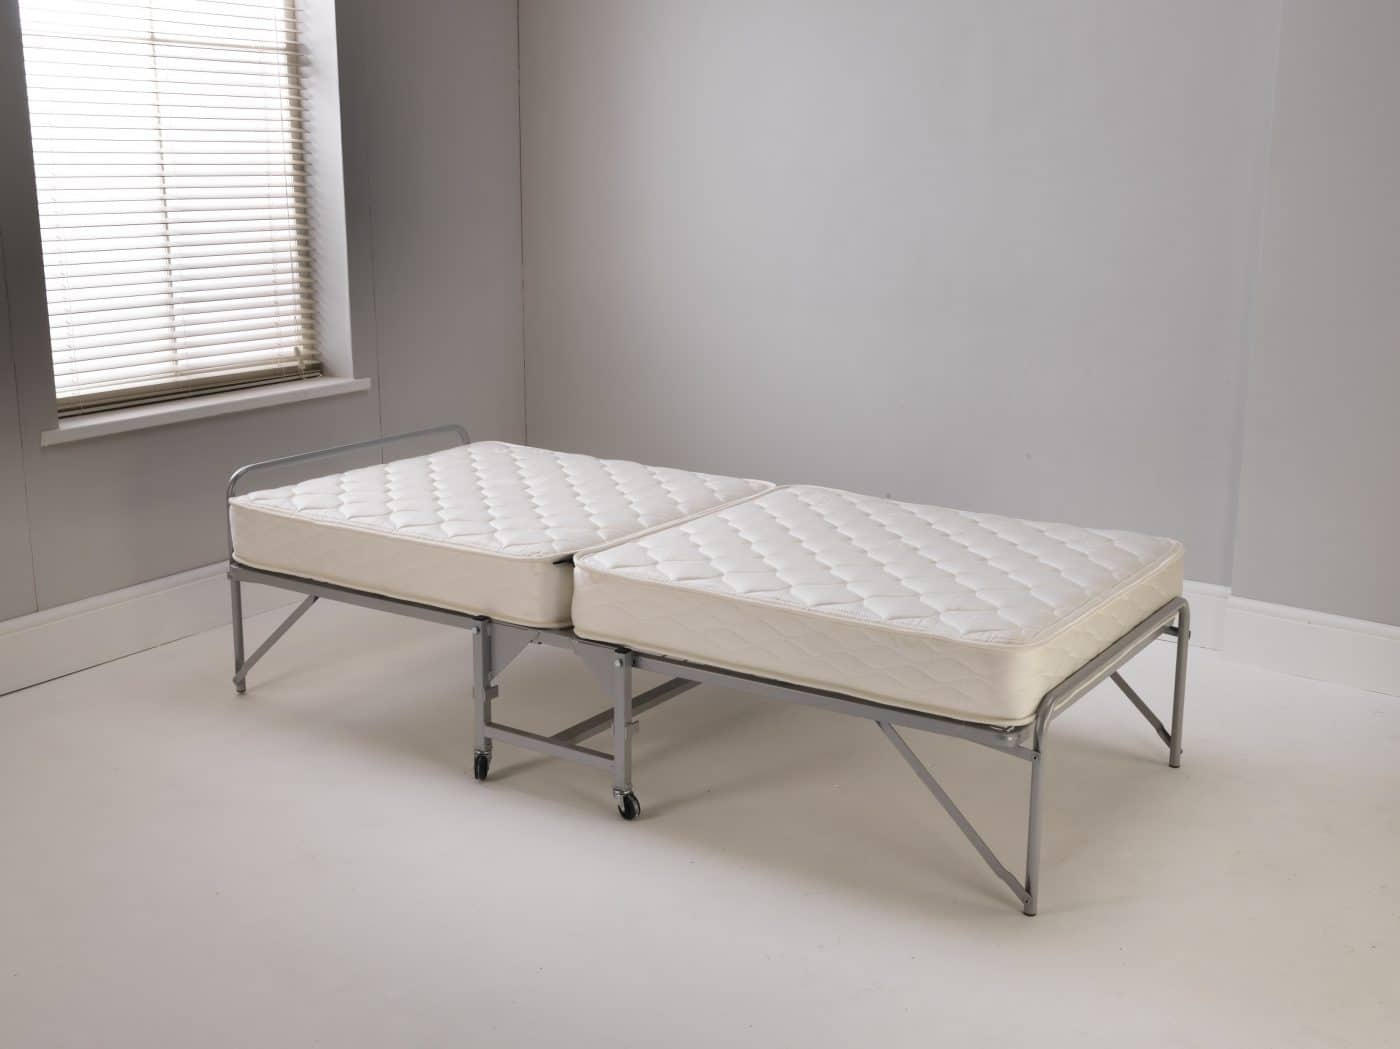 Hotel Furniture - Fold Up Bed